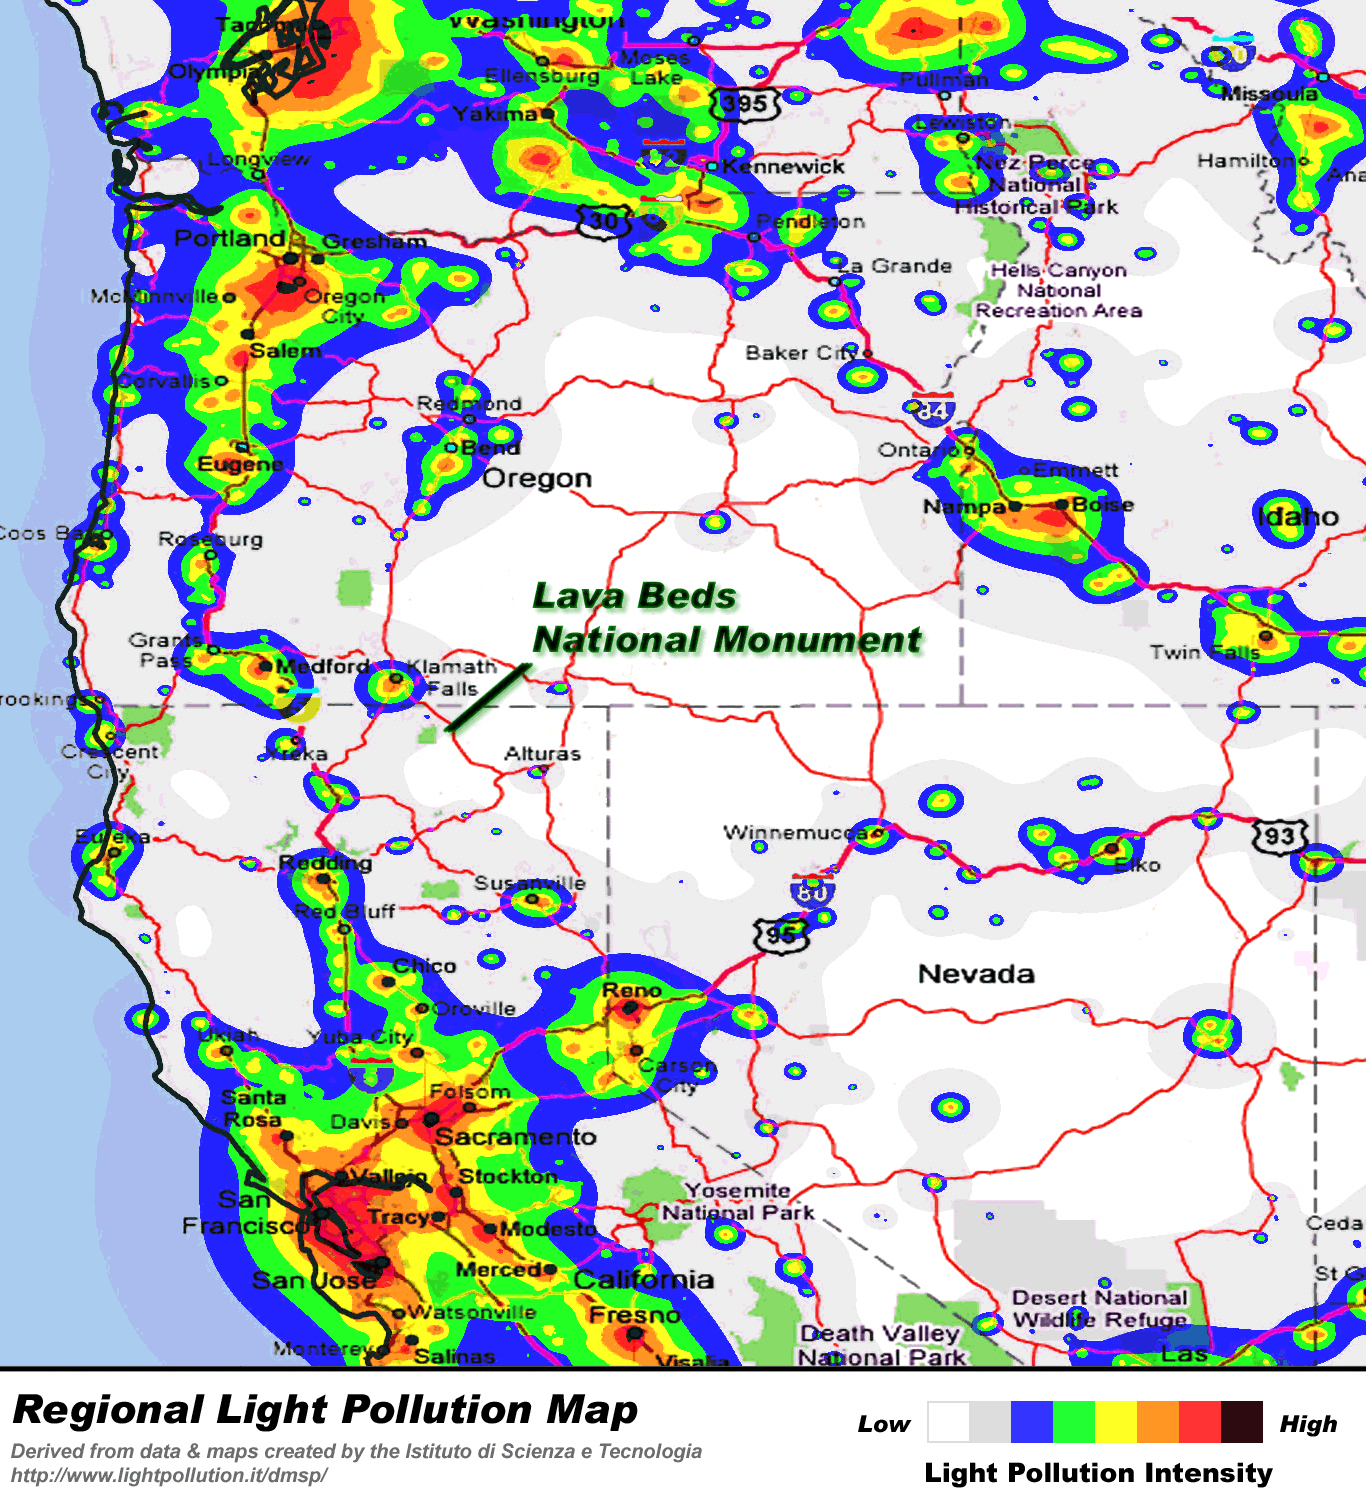 California Road Map Light Pollution Map California California Road - Light Pollution Map California